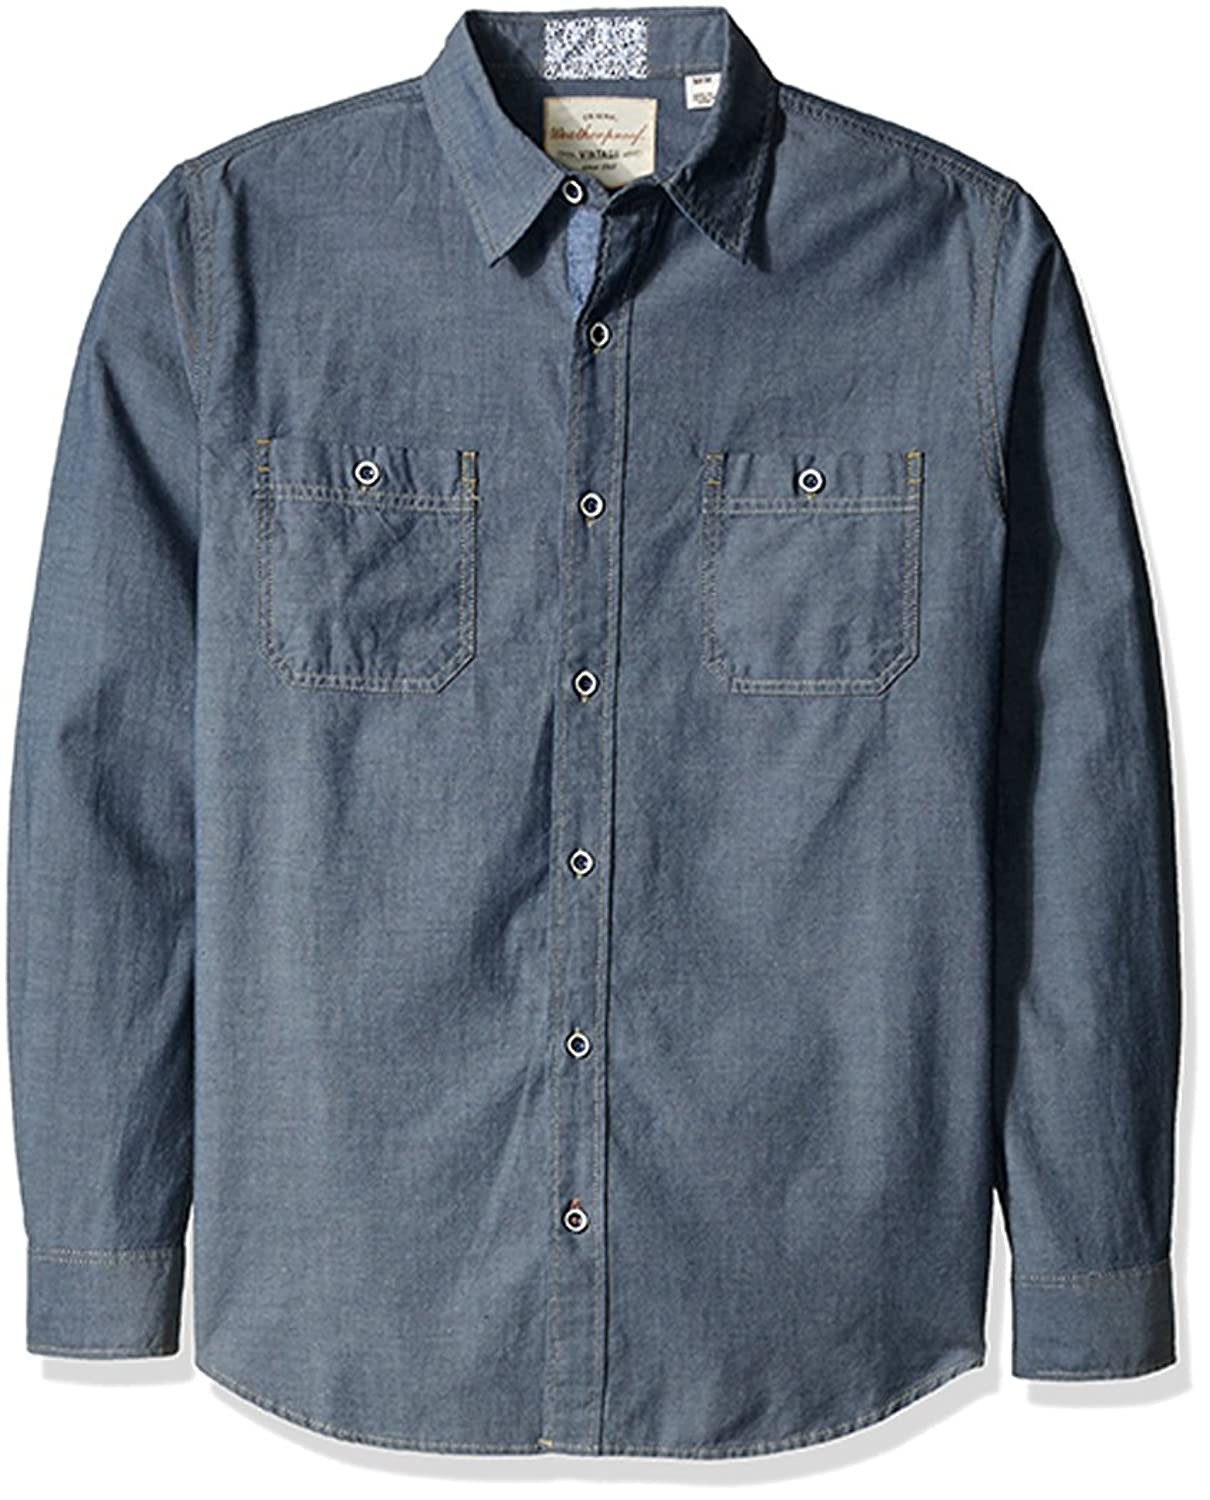 1910s Men's Working Class Clothing Weatherproof Vintage Mens Chambray Double Pocket Shirt $34.75 AT vintagedancer.com